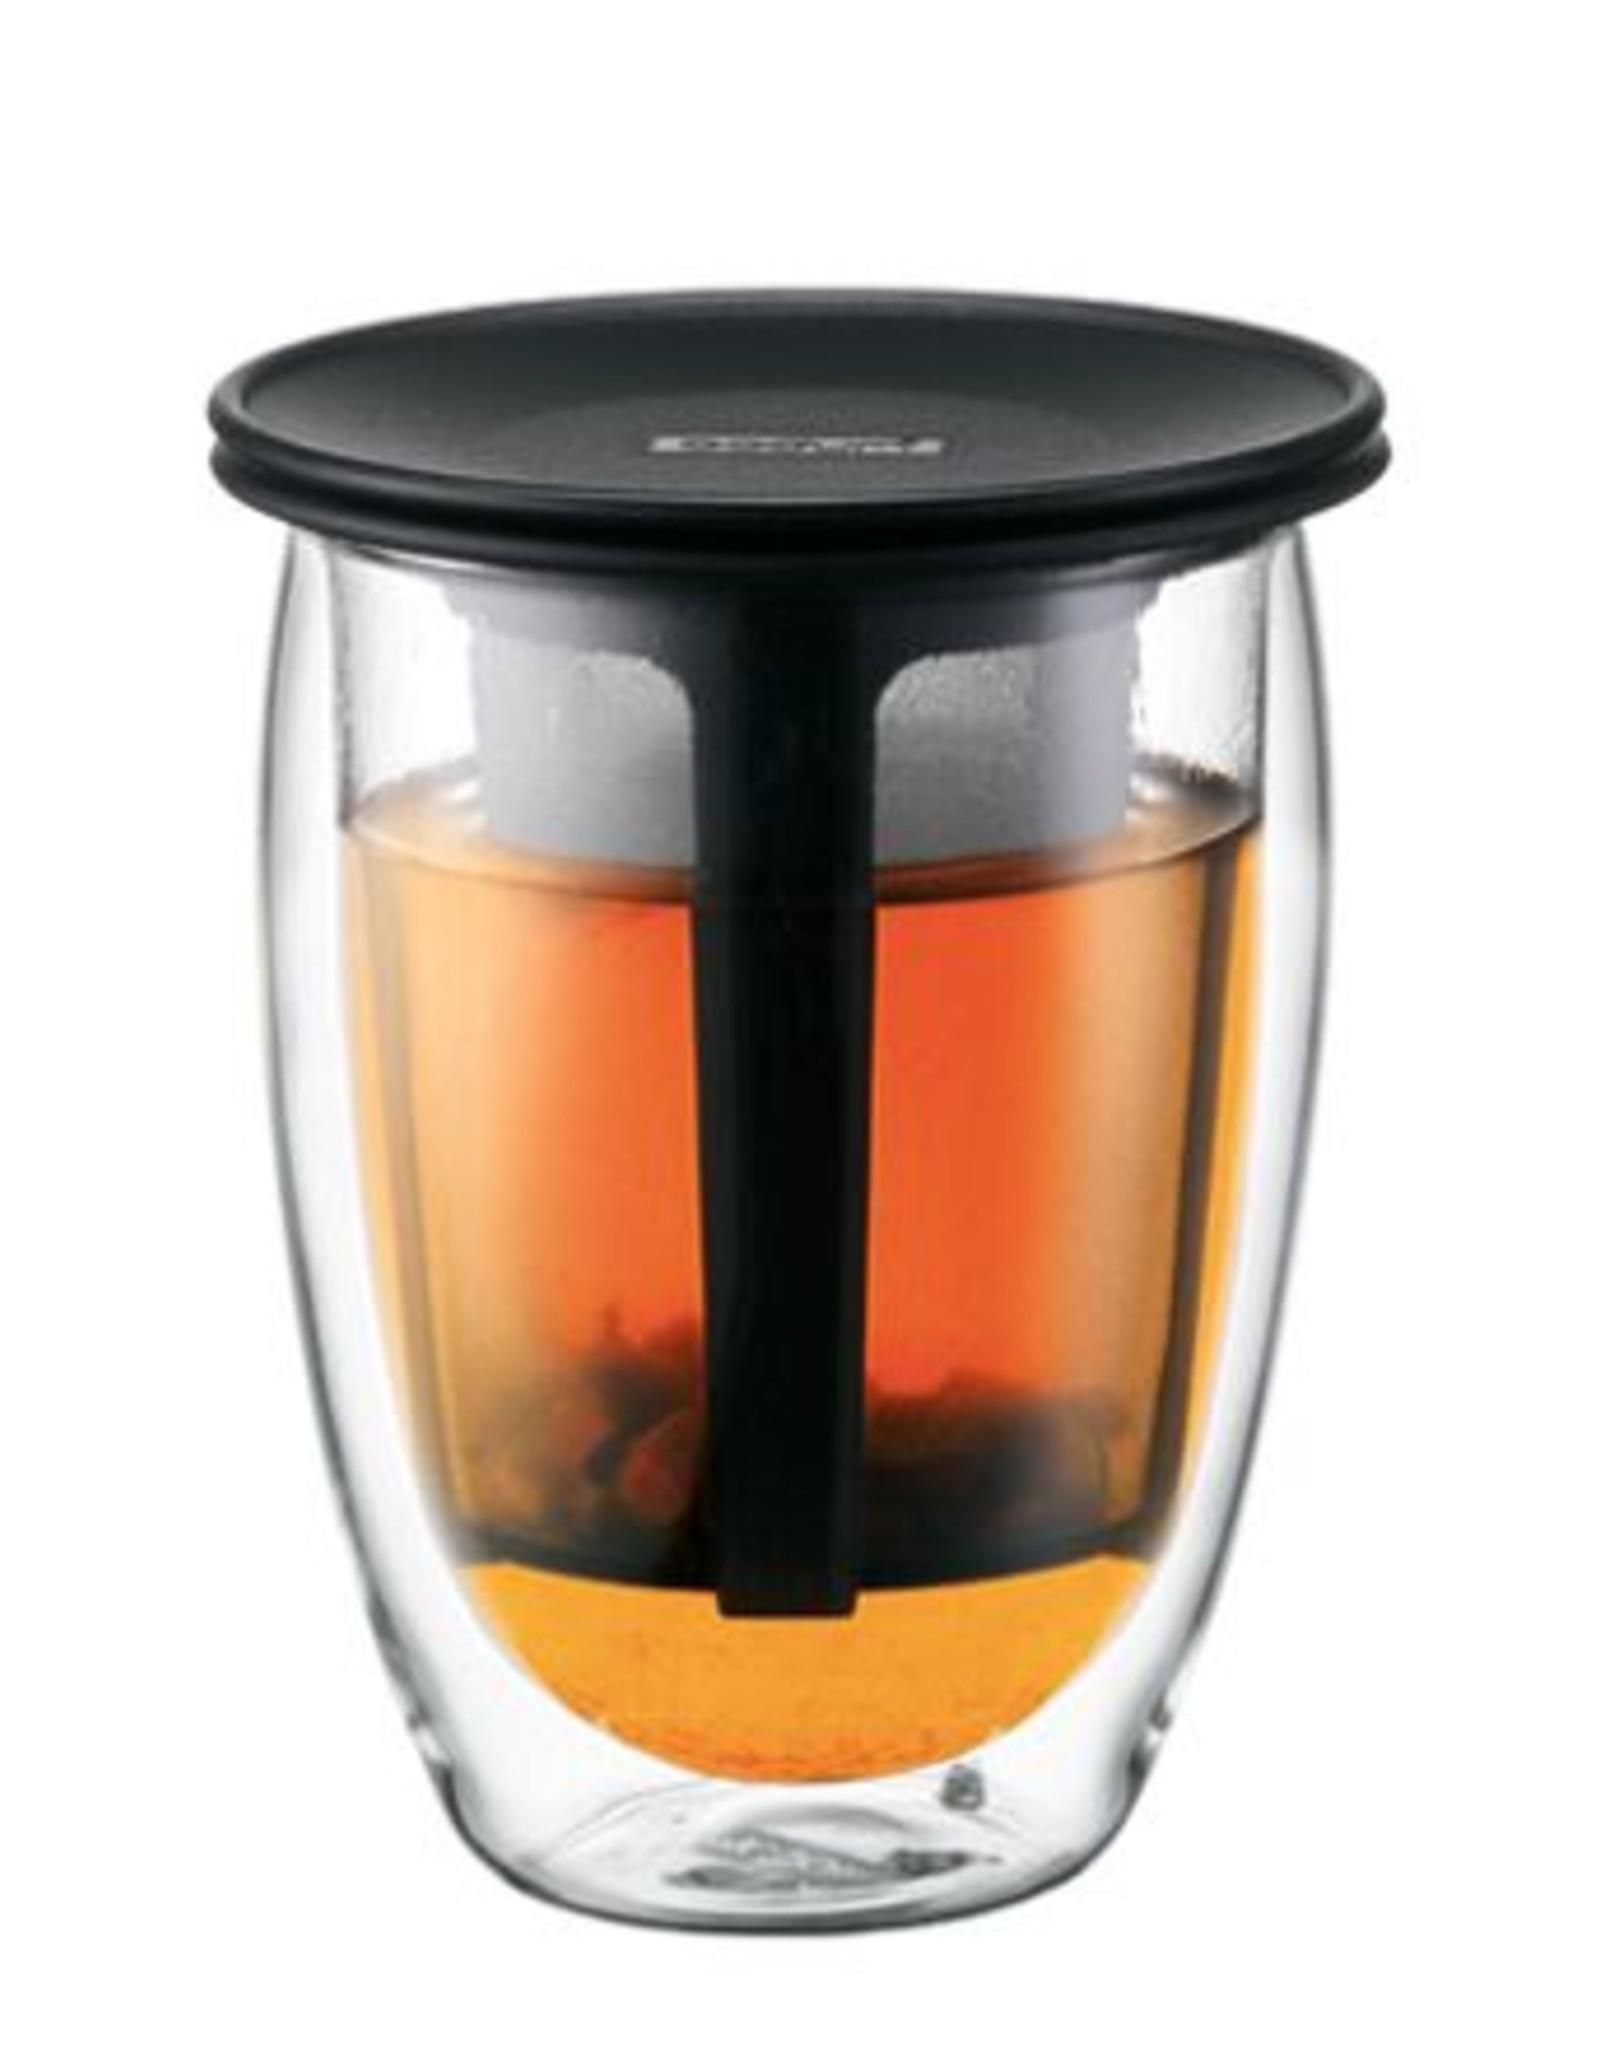 Bodum Tea For 1 Black van Bodum